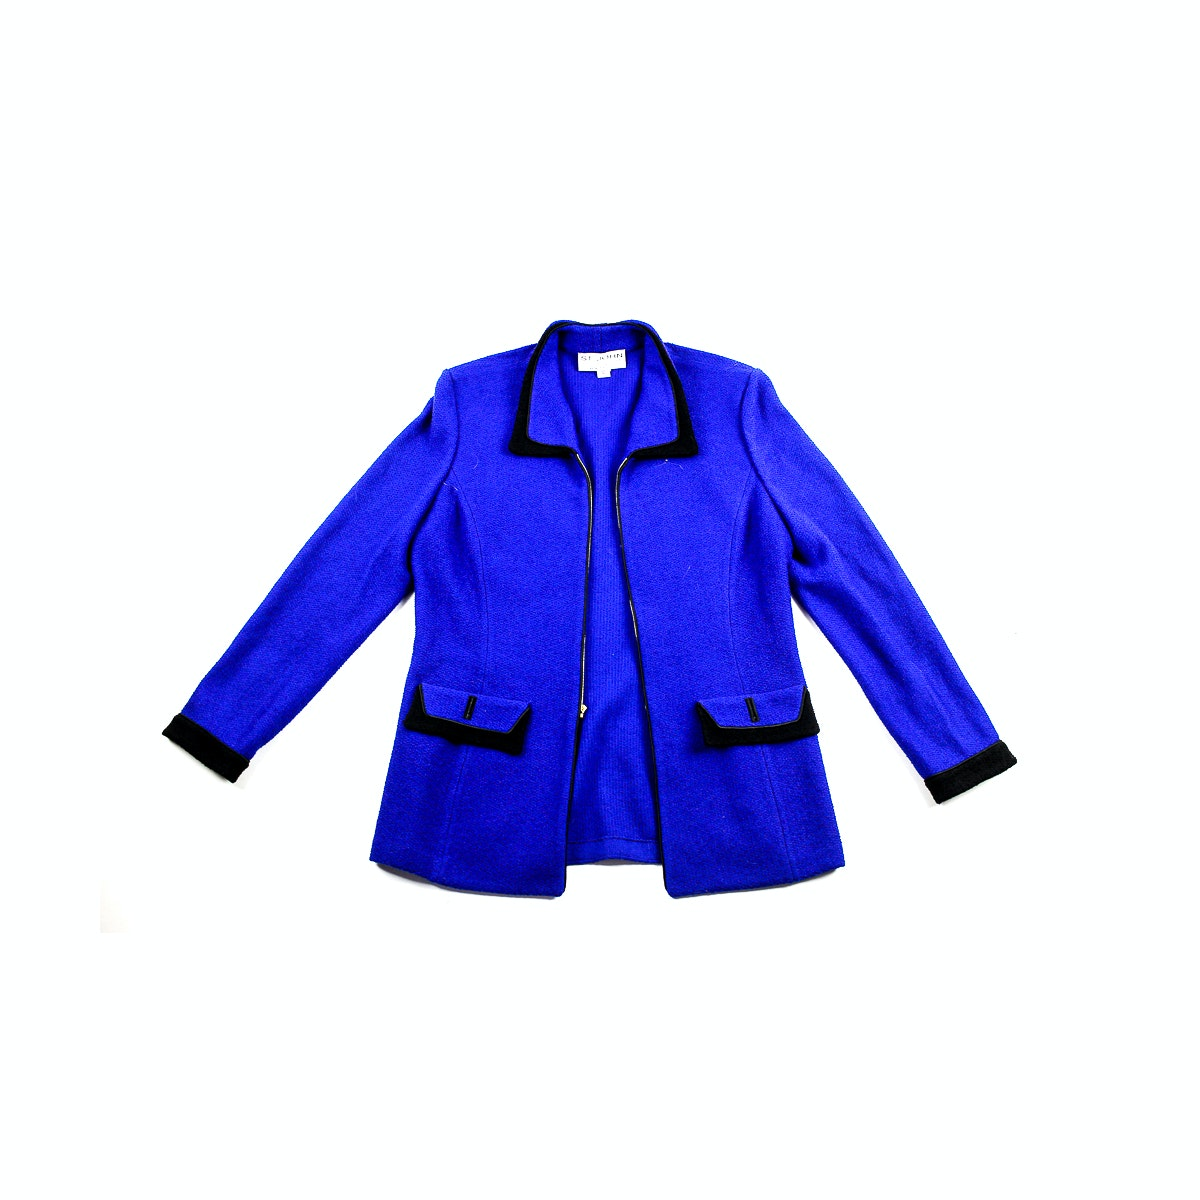 St. John Collection Blue Jacket